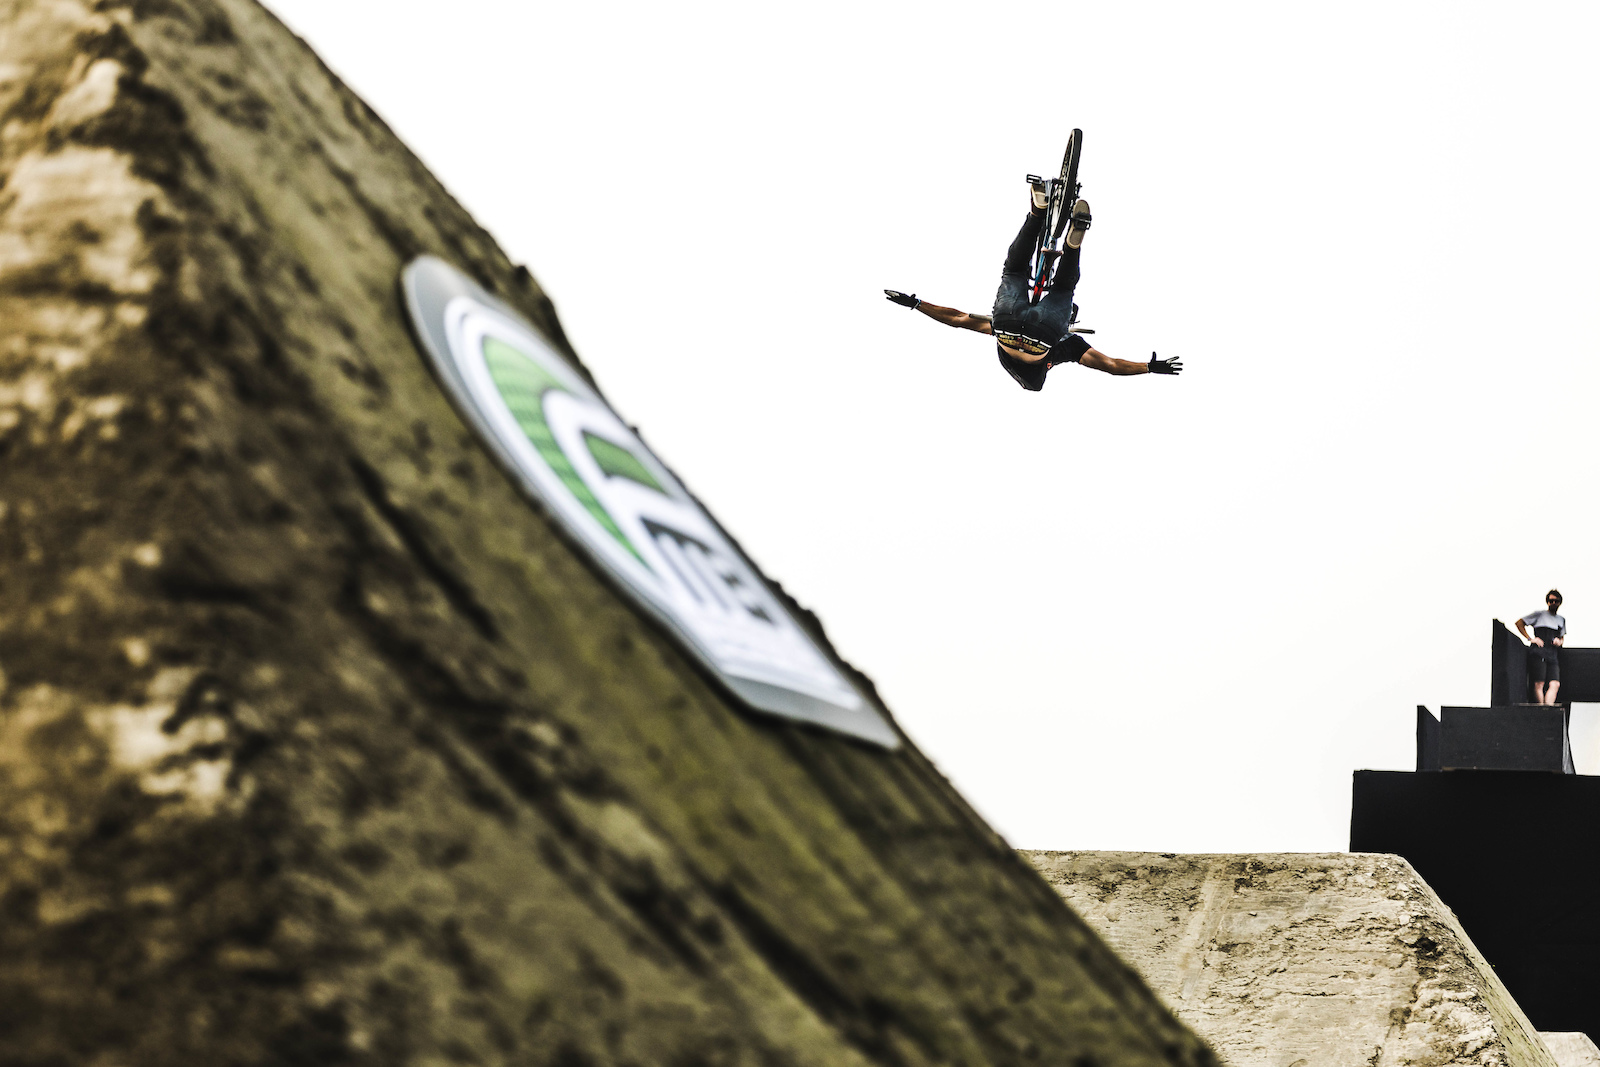 Timoth Bringer went second in Chengdu last week here he is with a Backflip Tuck-No.